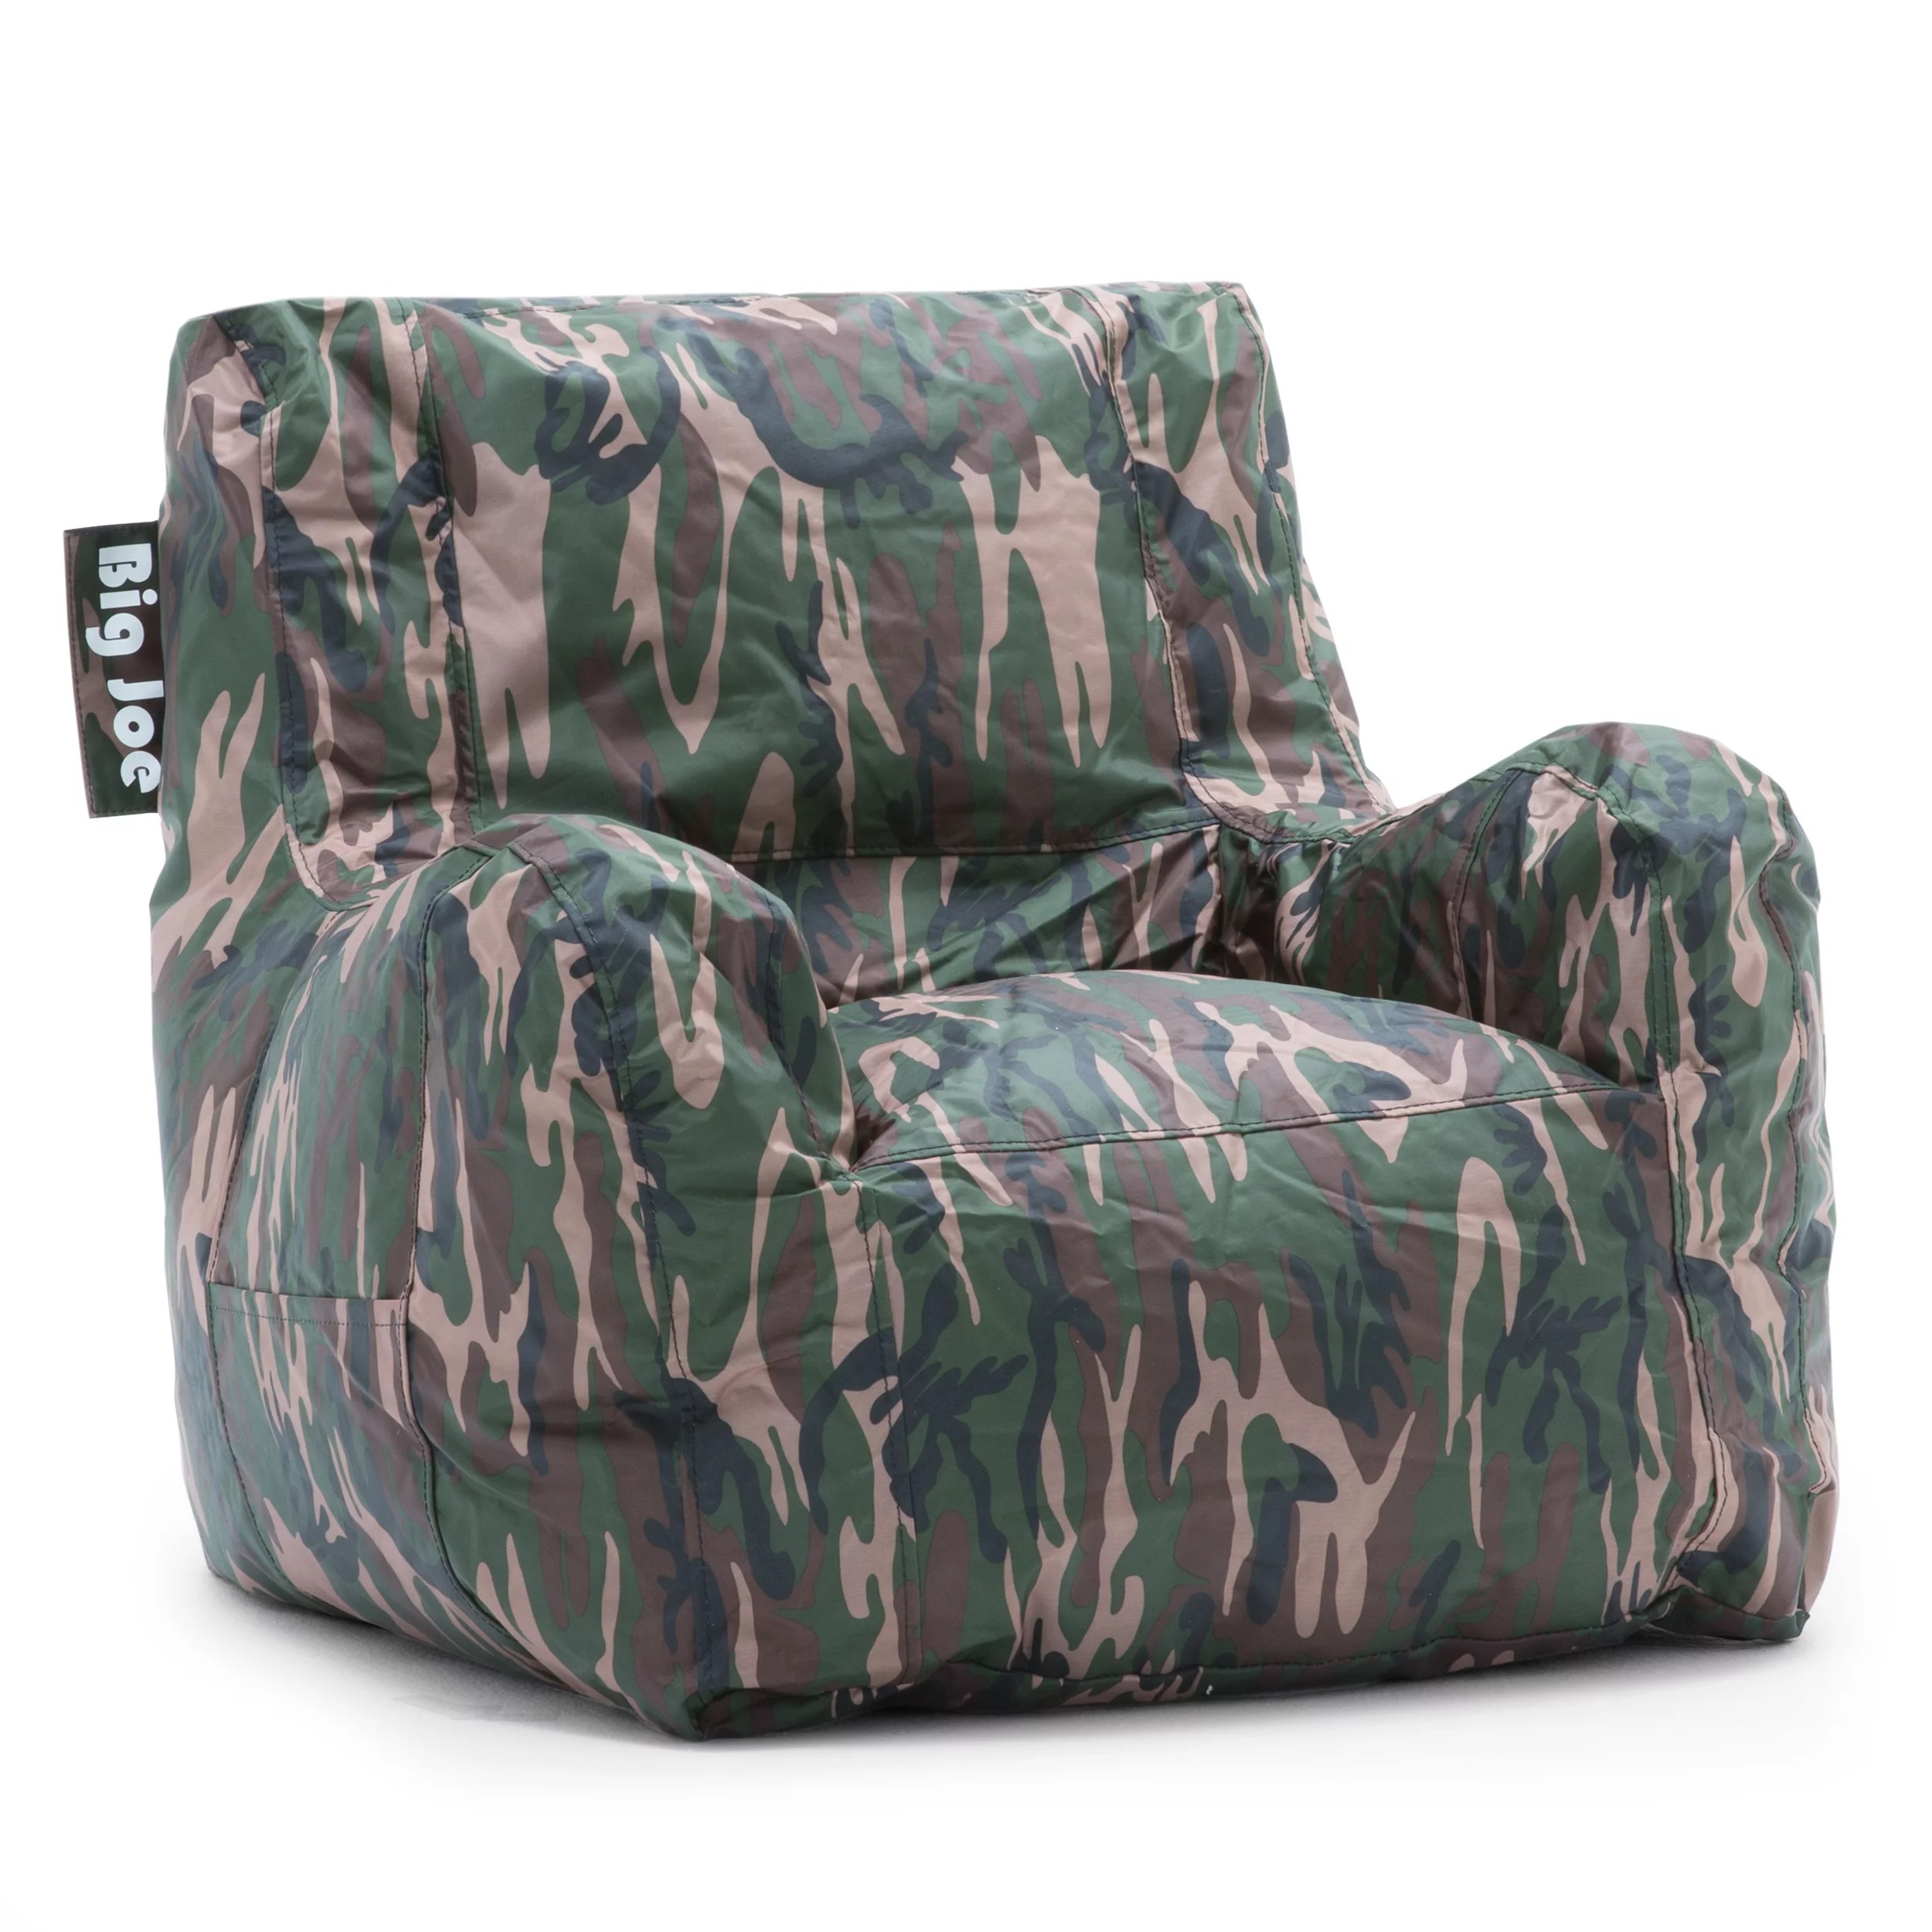 Teen Room Chair Details About Camo Bean Bag Chair Camouflage Tv Gaming Movie Lounger Kids Teen Room Dorm Seat